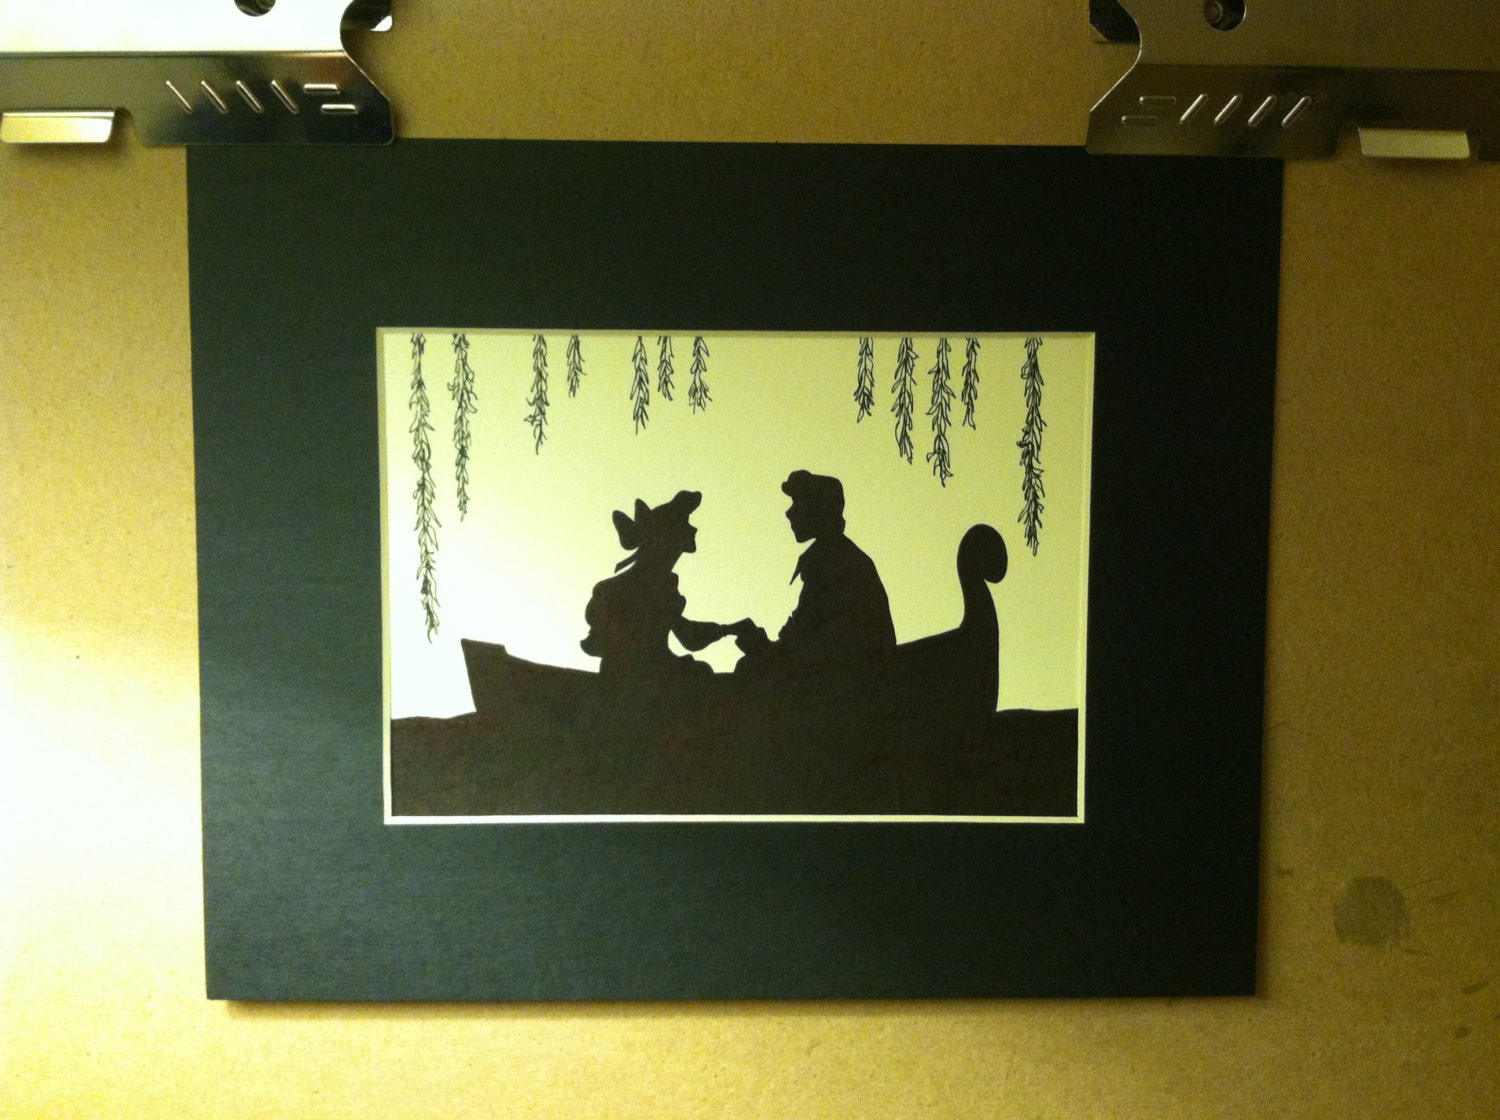 Disney Ariel and Eric Silhouette